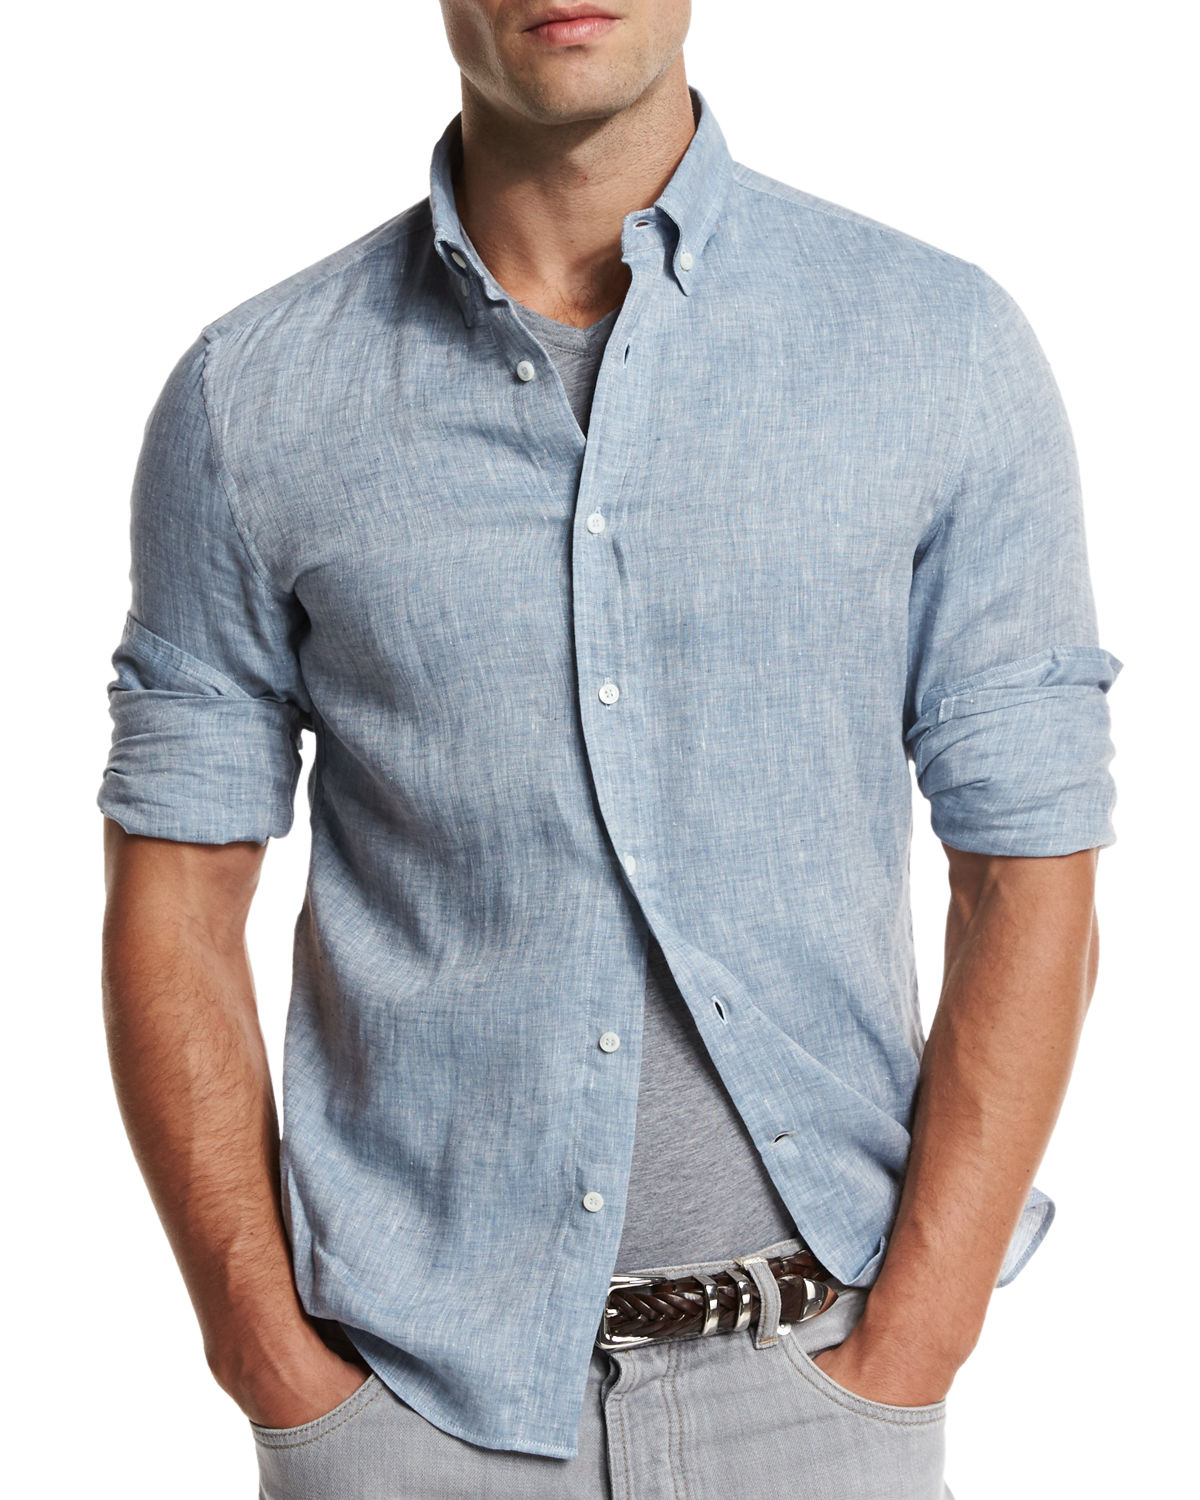 Leisure-Fit Linen Sport Shirt